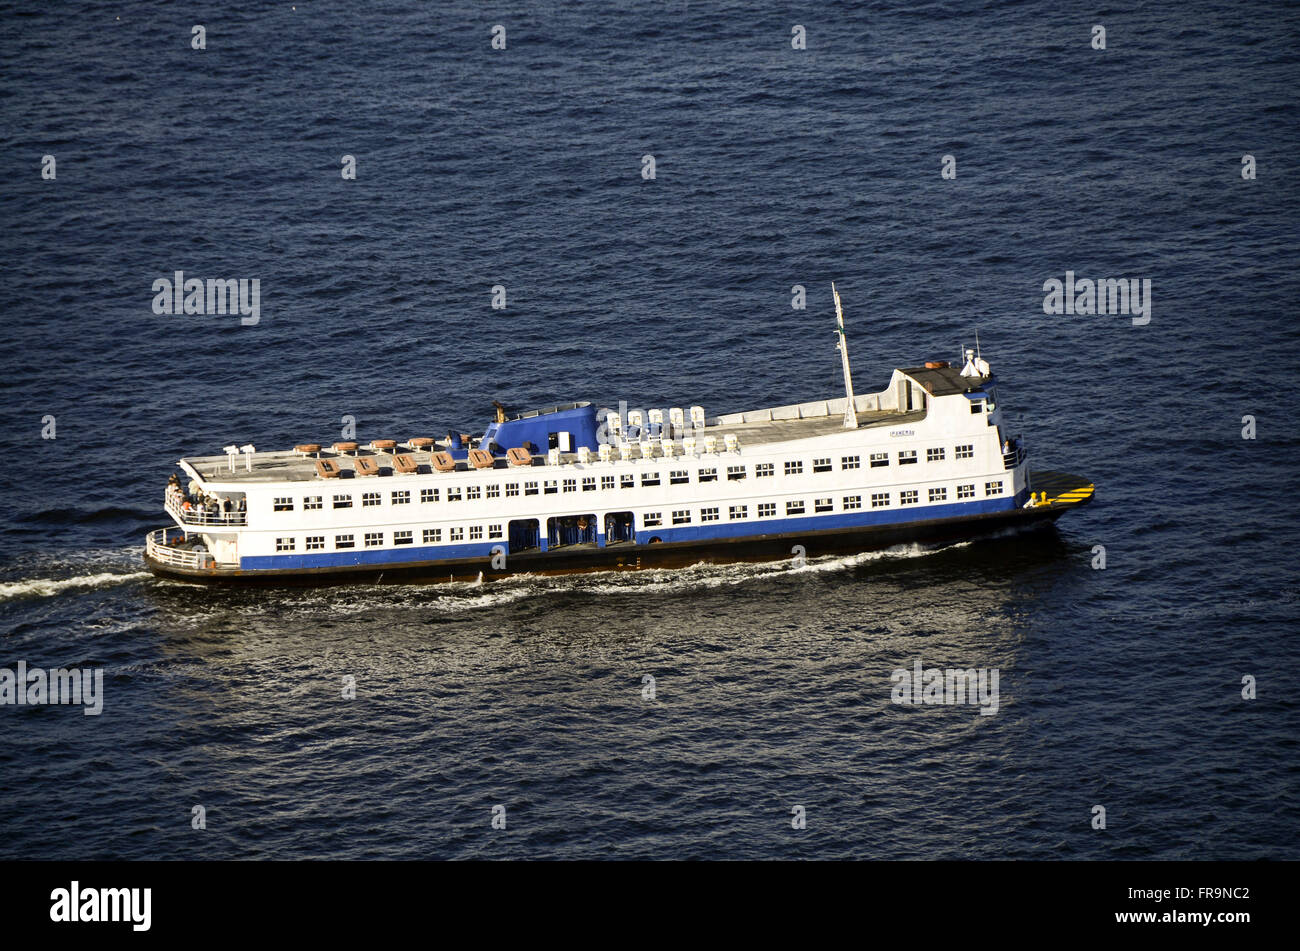 Barca making passenger service between Rio de Janeiro and Niteroi in Guanabara Bay - Stock Image